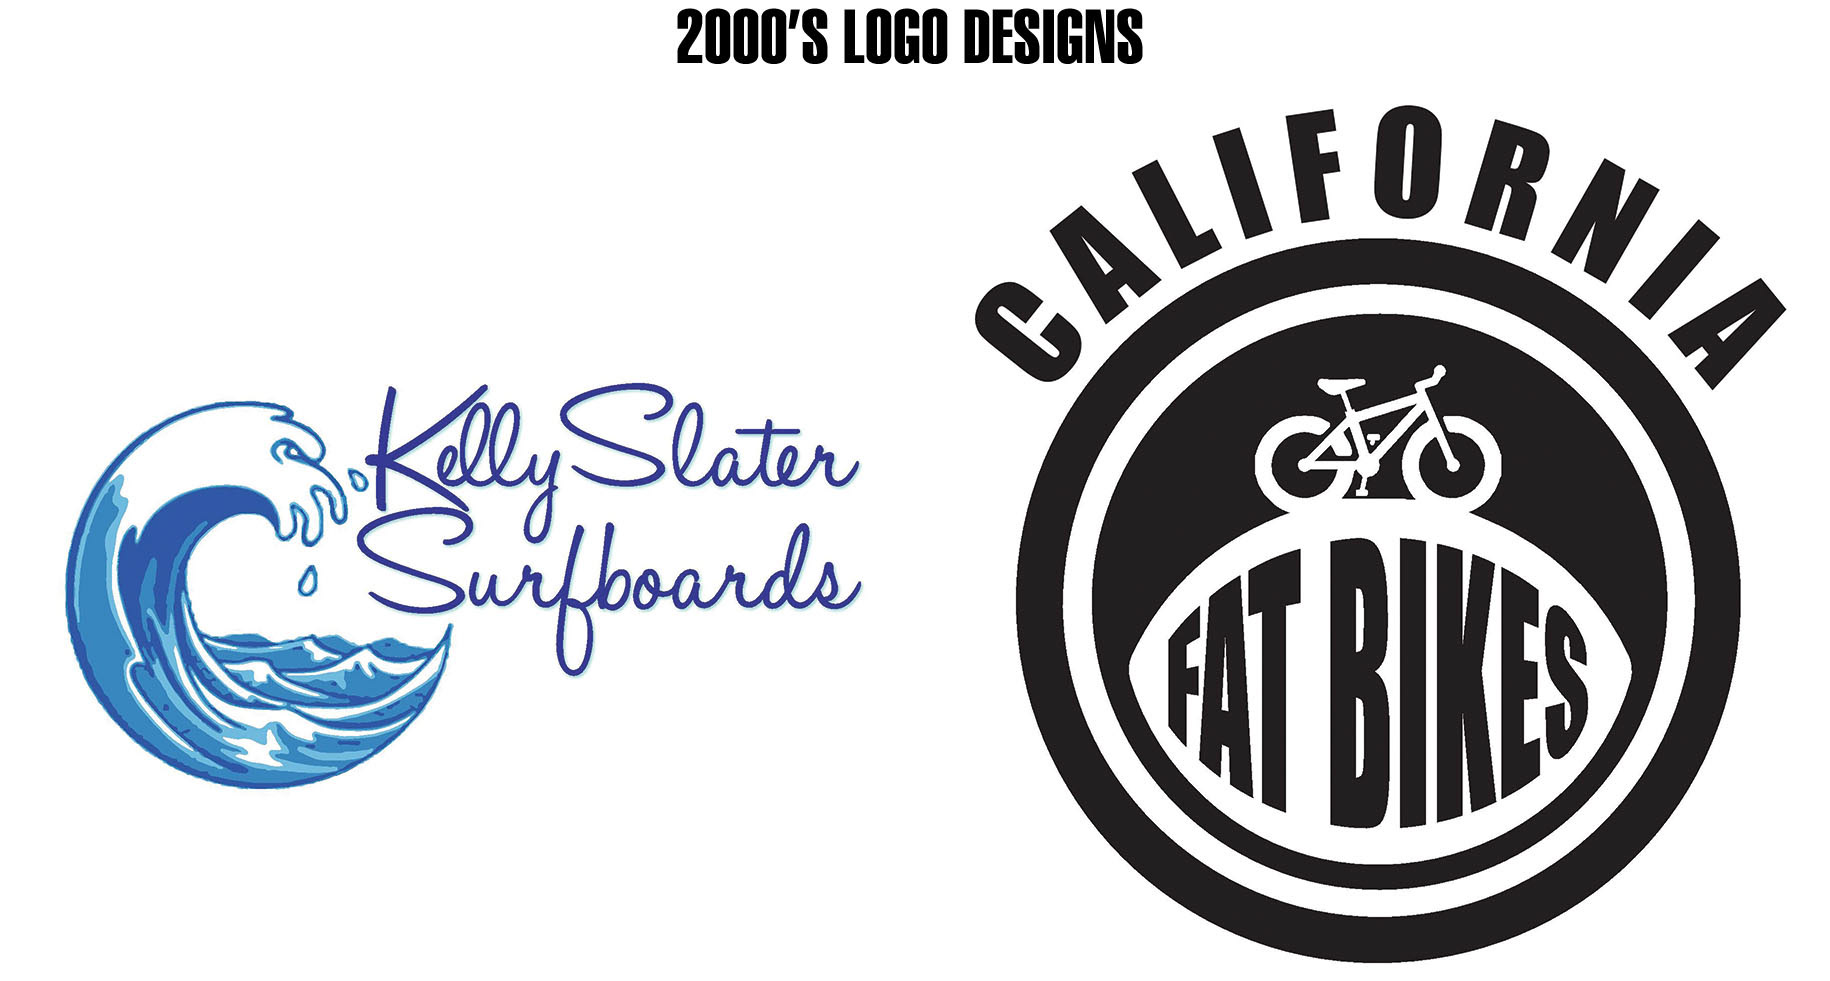 The Assignment Was To Take 2 Fake Companies And Design Logos Based Off Of Designs From 50s 70s 2000s I Chose Kelly Slater Surfboards